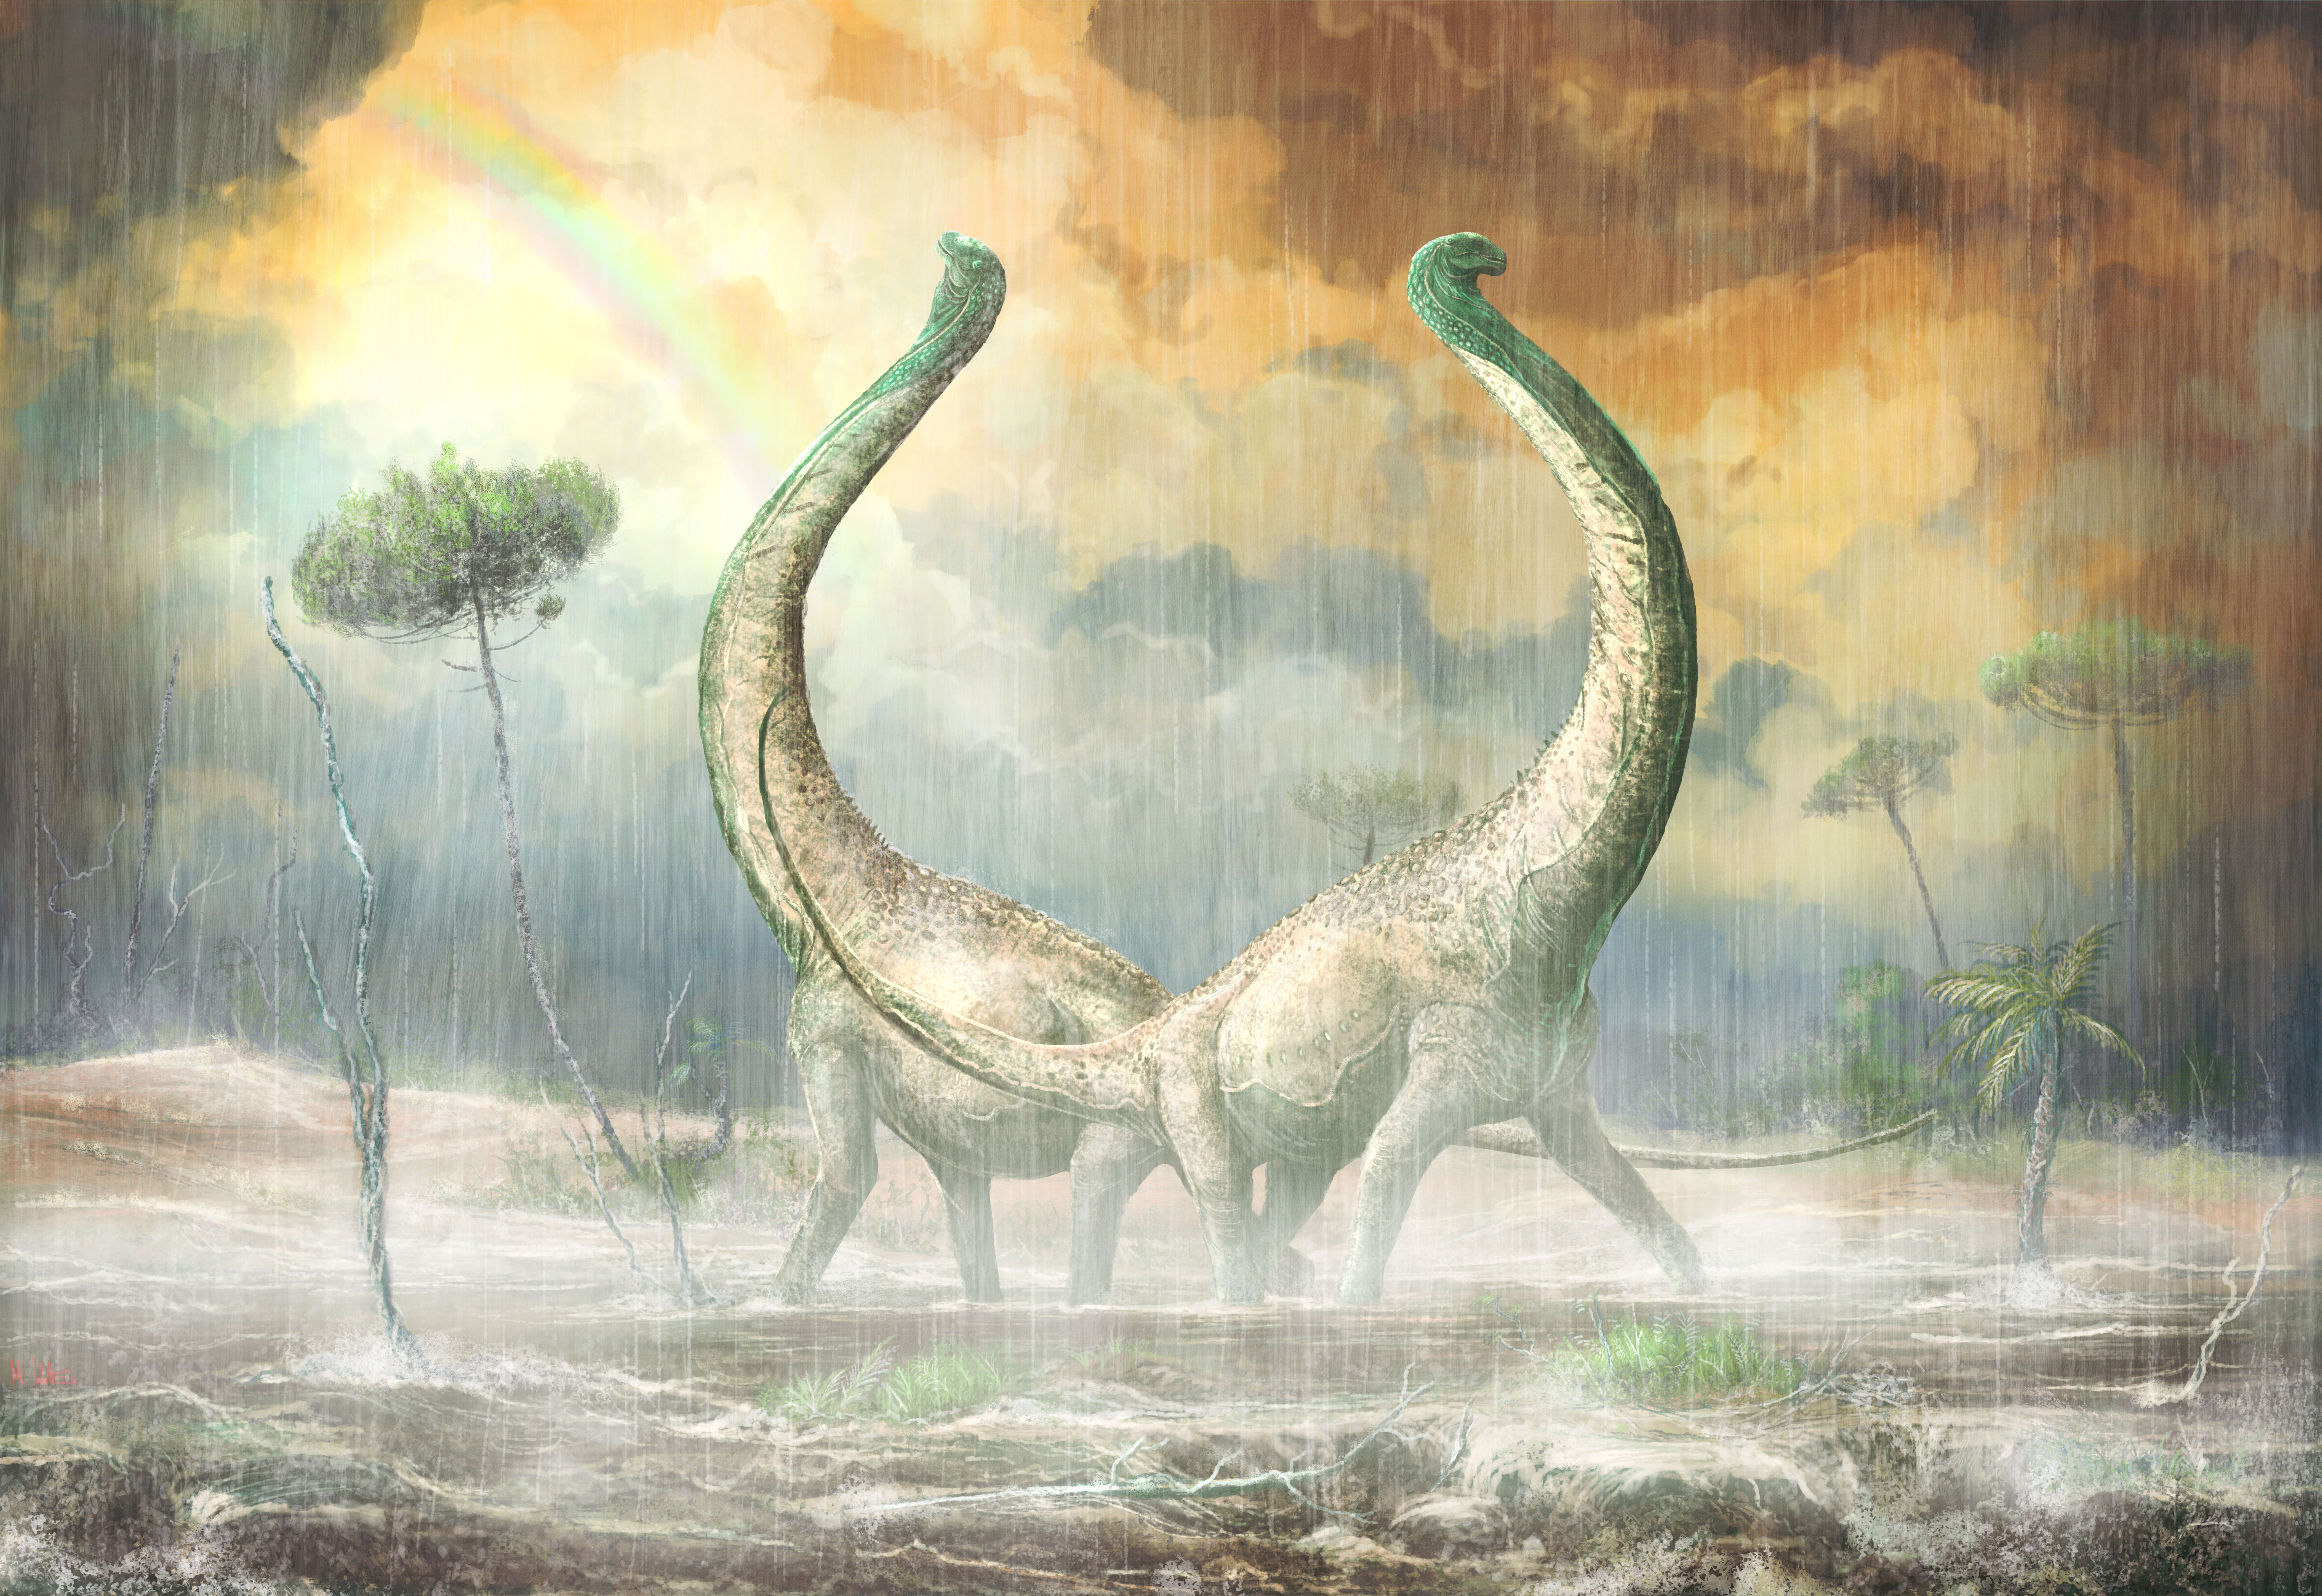 Two long-necked dinosaurs pose together in the rain